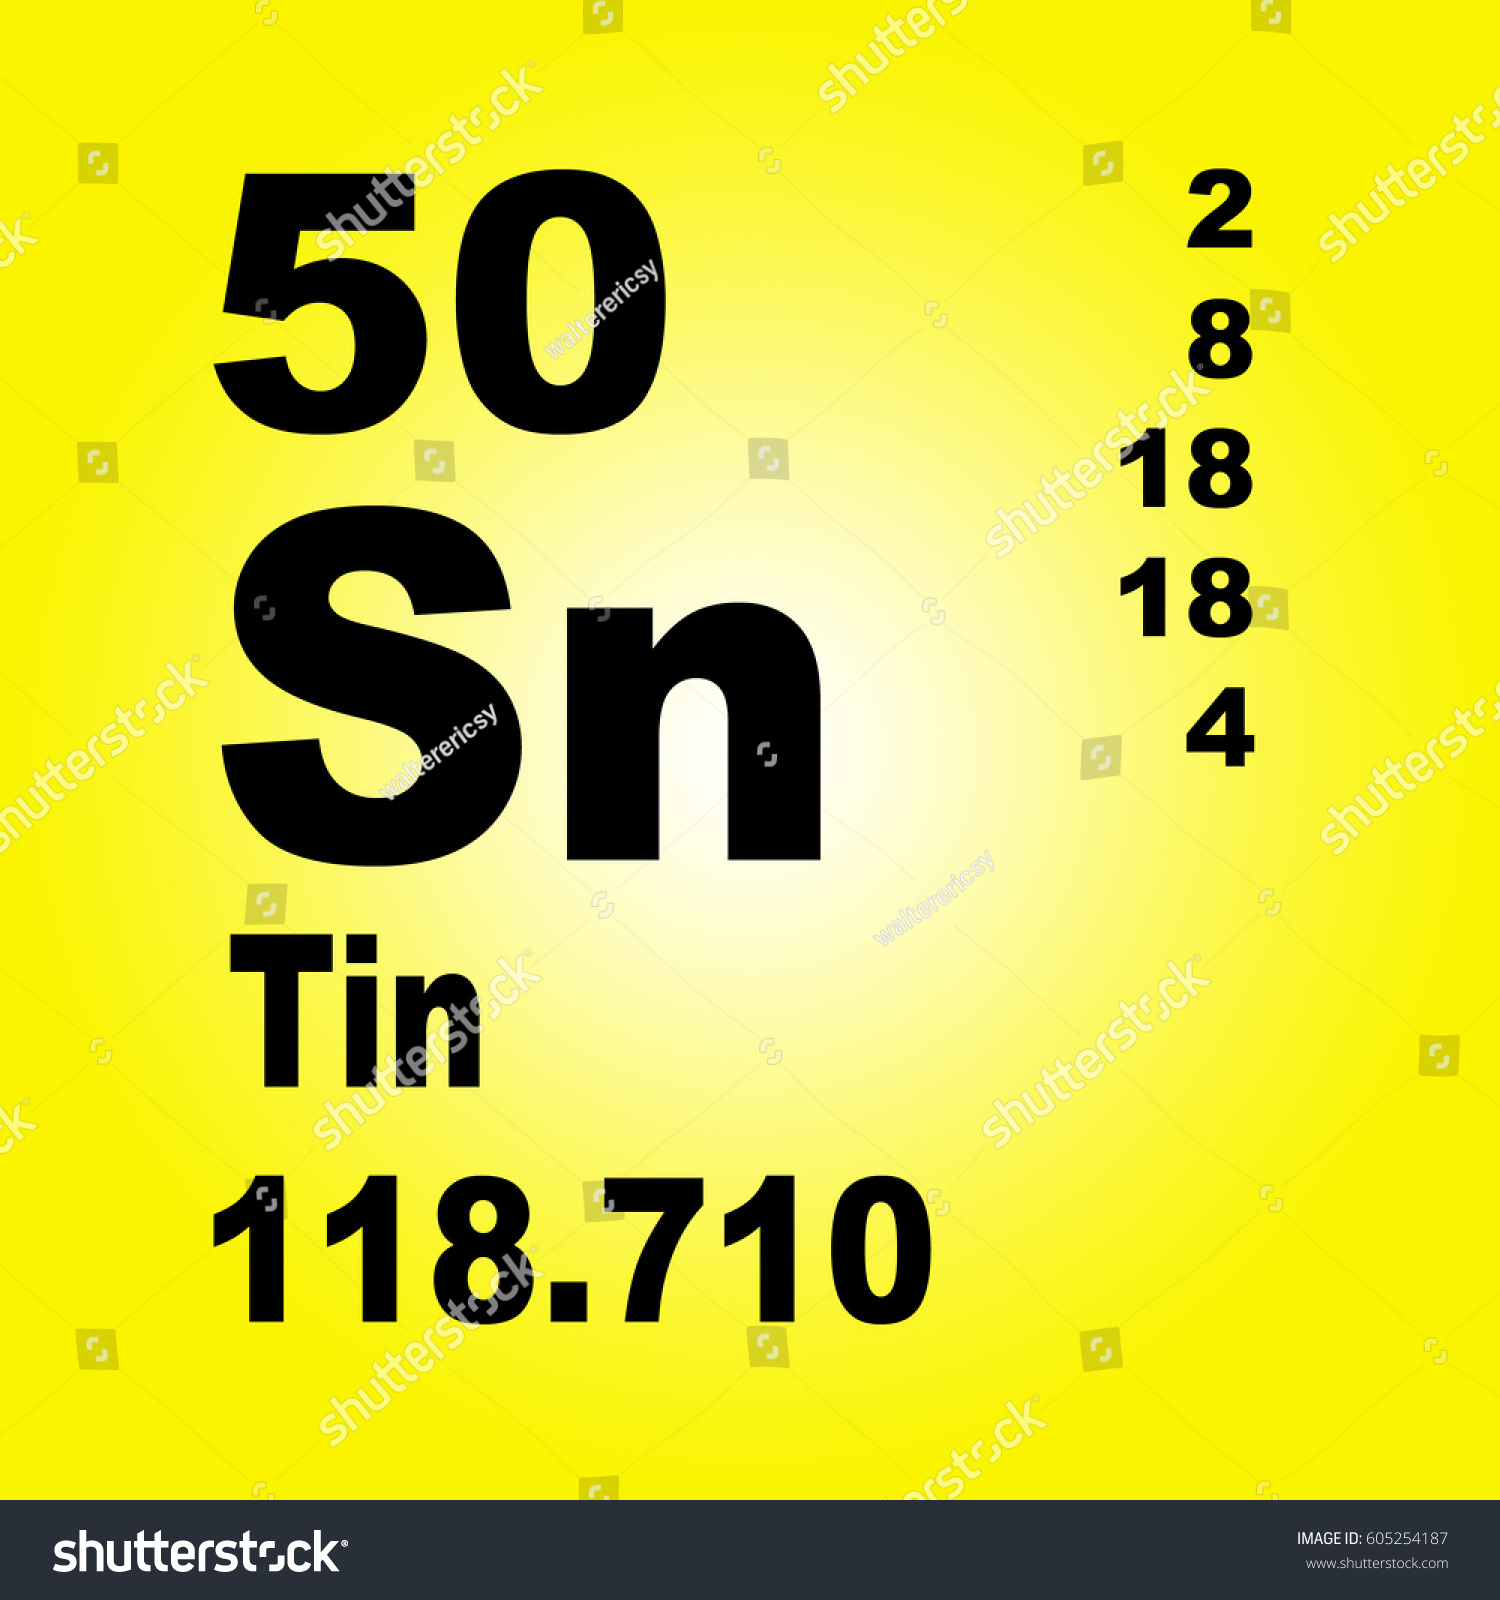 Symbol of tin in the periodic table image collections periodic symbol of tin in the periodic table images periodic table images symbol of tin in the gamestrikefo Gallery